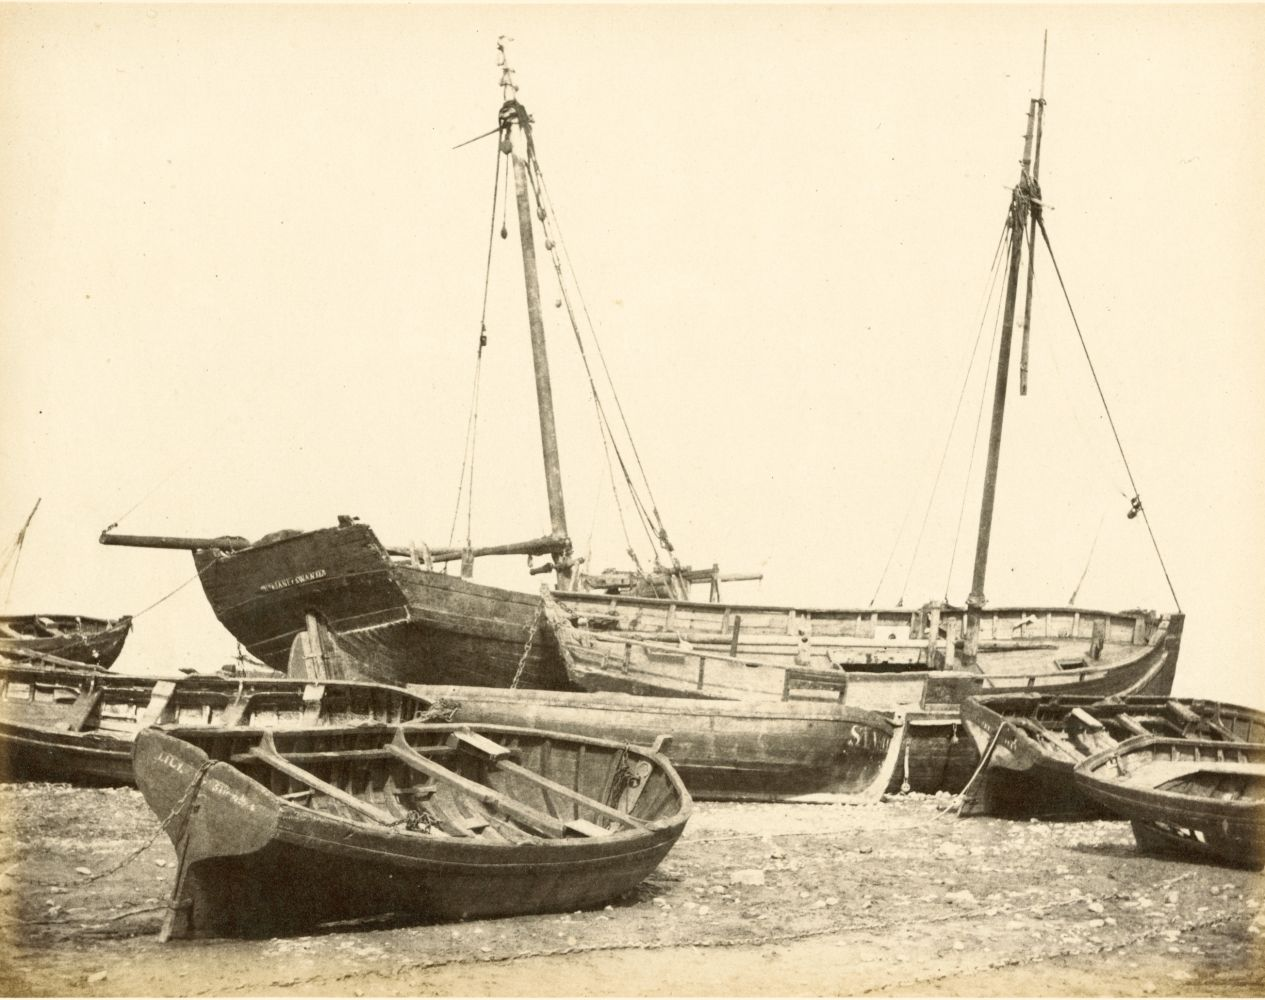 """Hugh OWEN (English, 1808-1897) Oyster boats, Swansea Albumen print, 1860s-1870s, from a paper negative, before 1855 17.3 x 22.2 cm mounted on 26.0 x 28.3 cm album sheet Numbered """"60"""" in pencil on mount"""